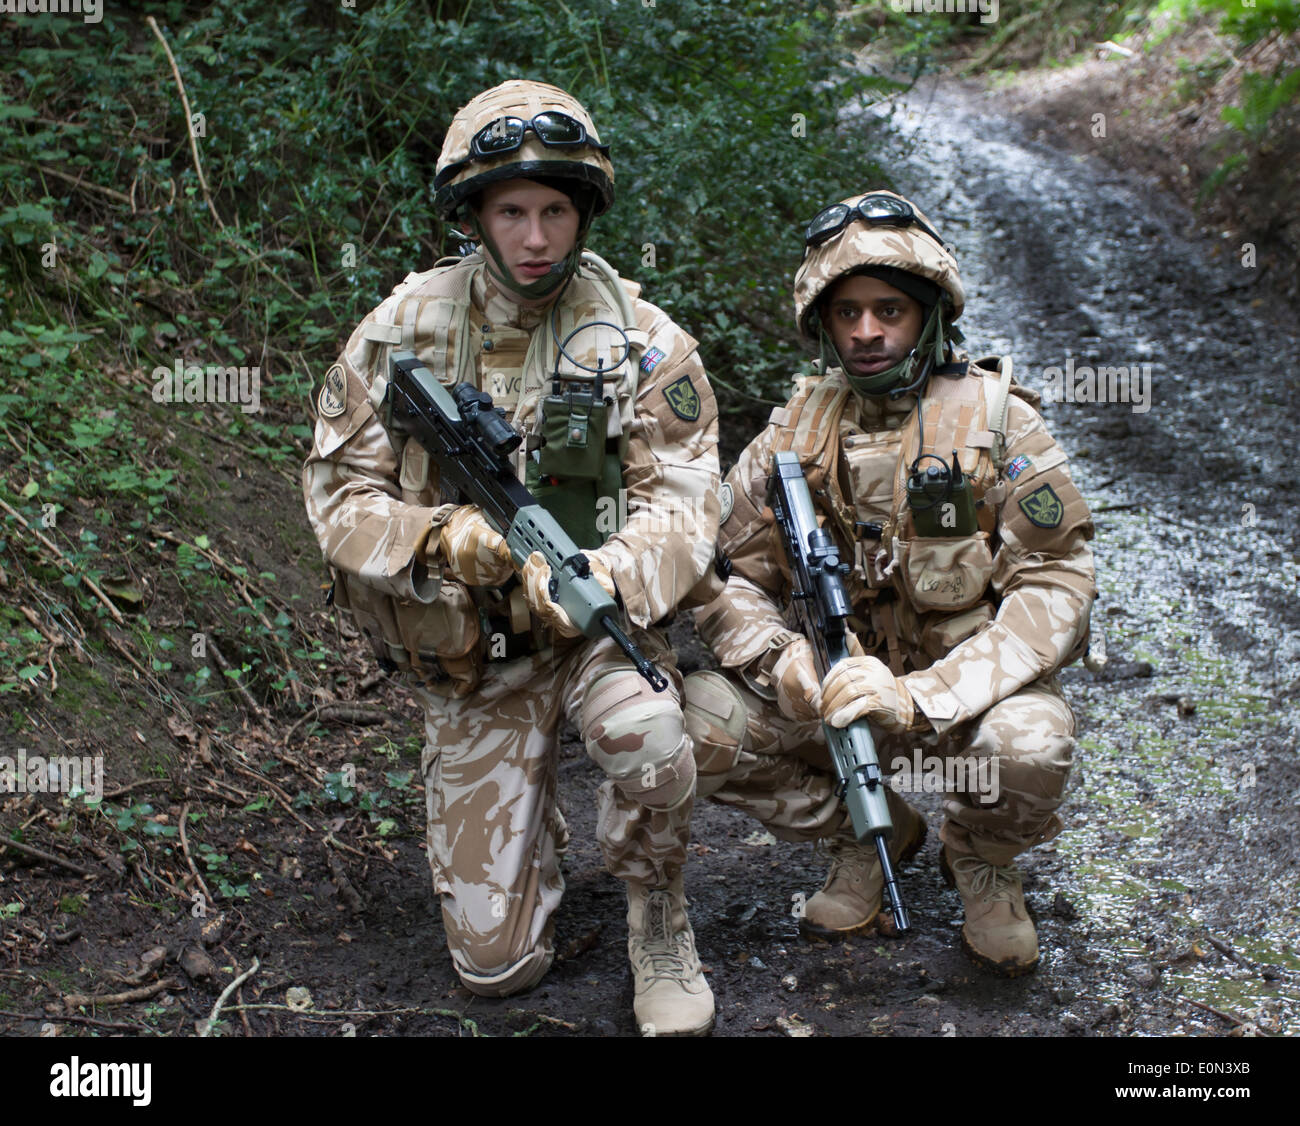 Soldiers in full British Army Uniform Stock Photo